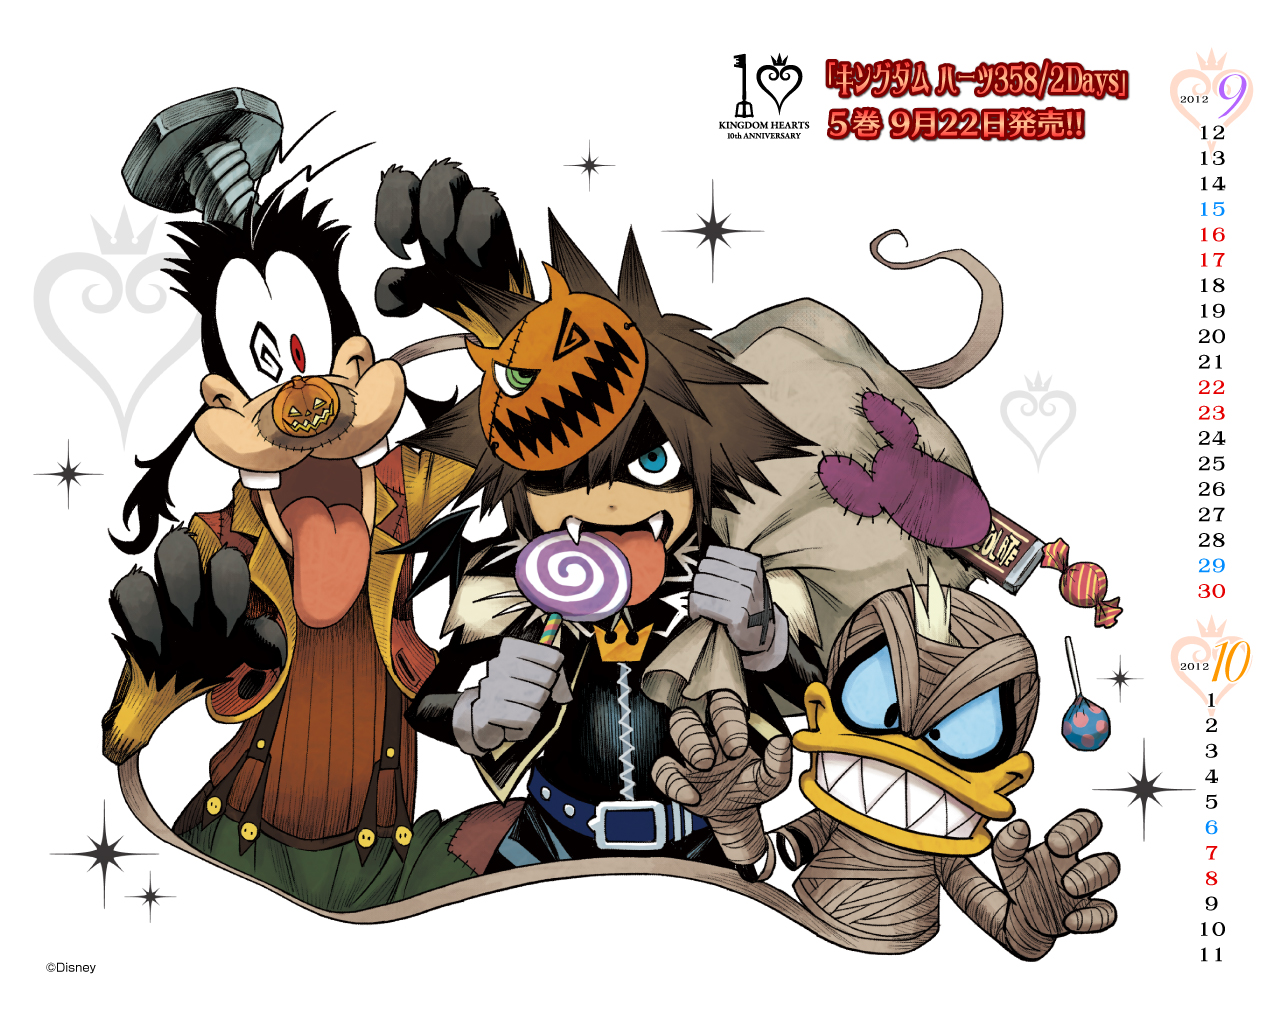 Fall In Love Again Wallpapers New Kh 10th Anniversary Wallpaper By Shiro Amano News